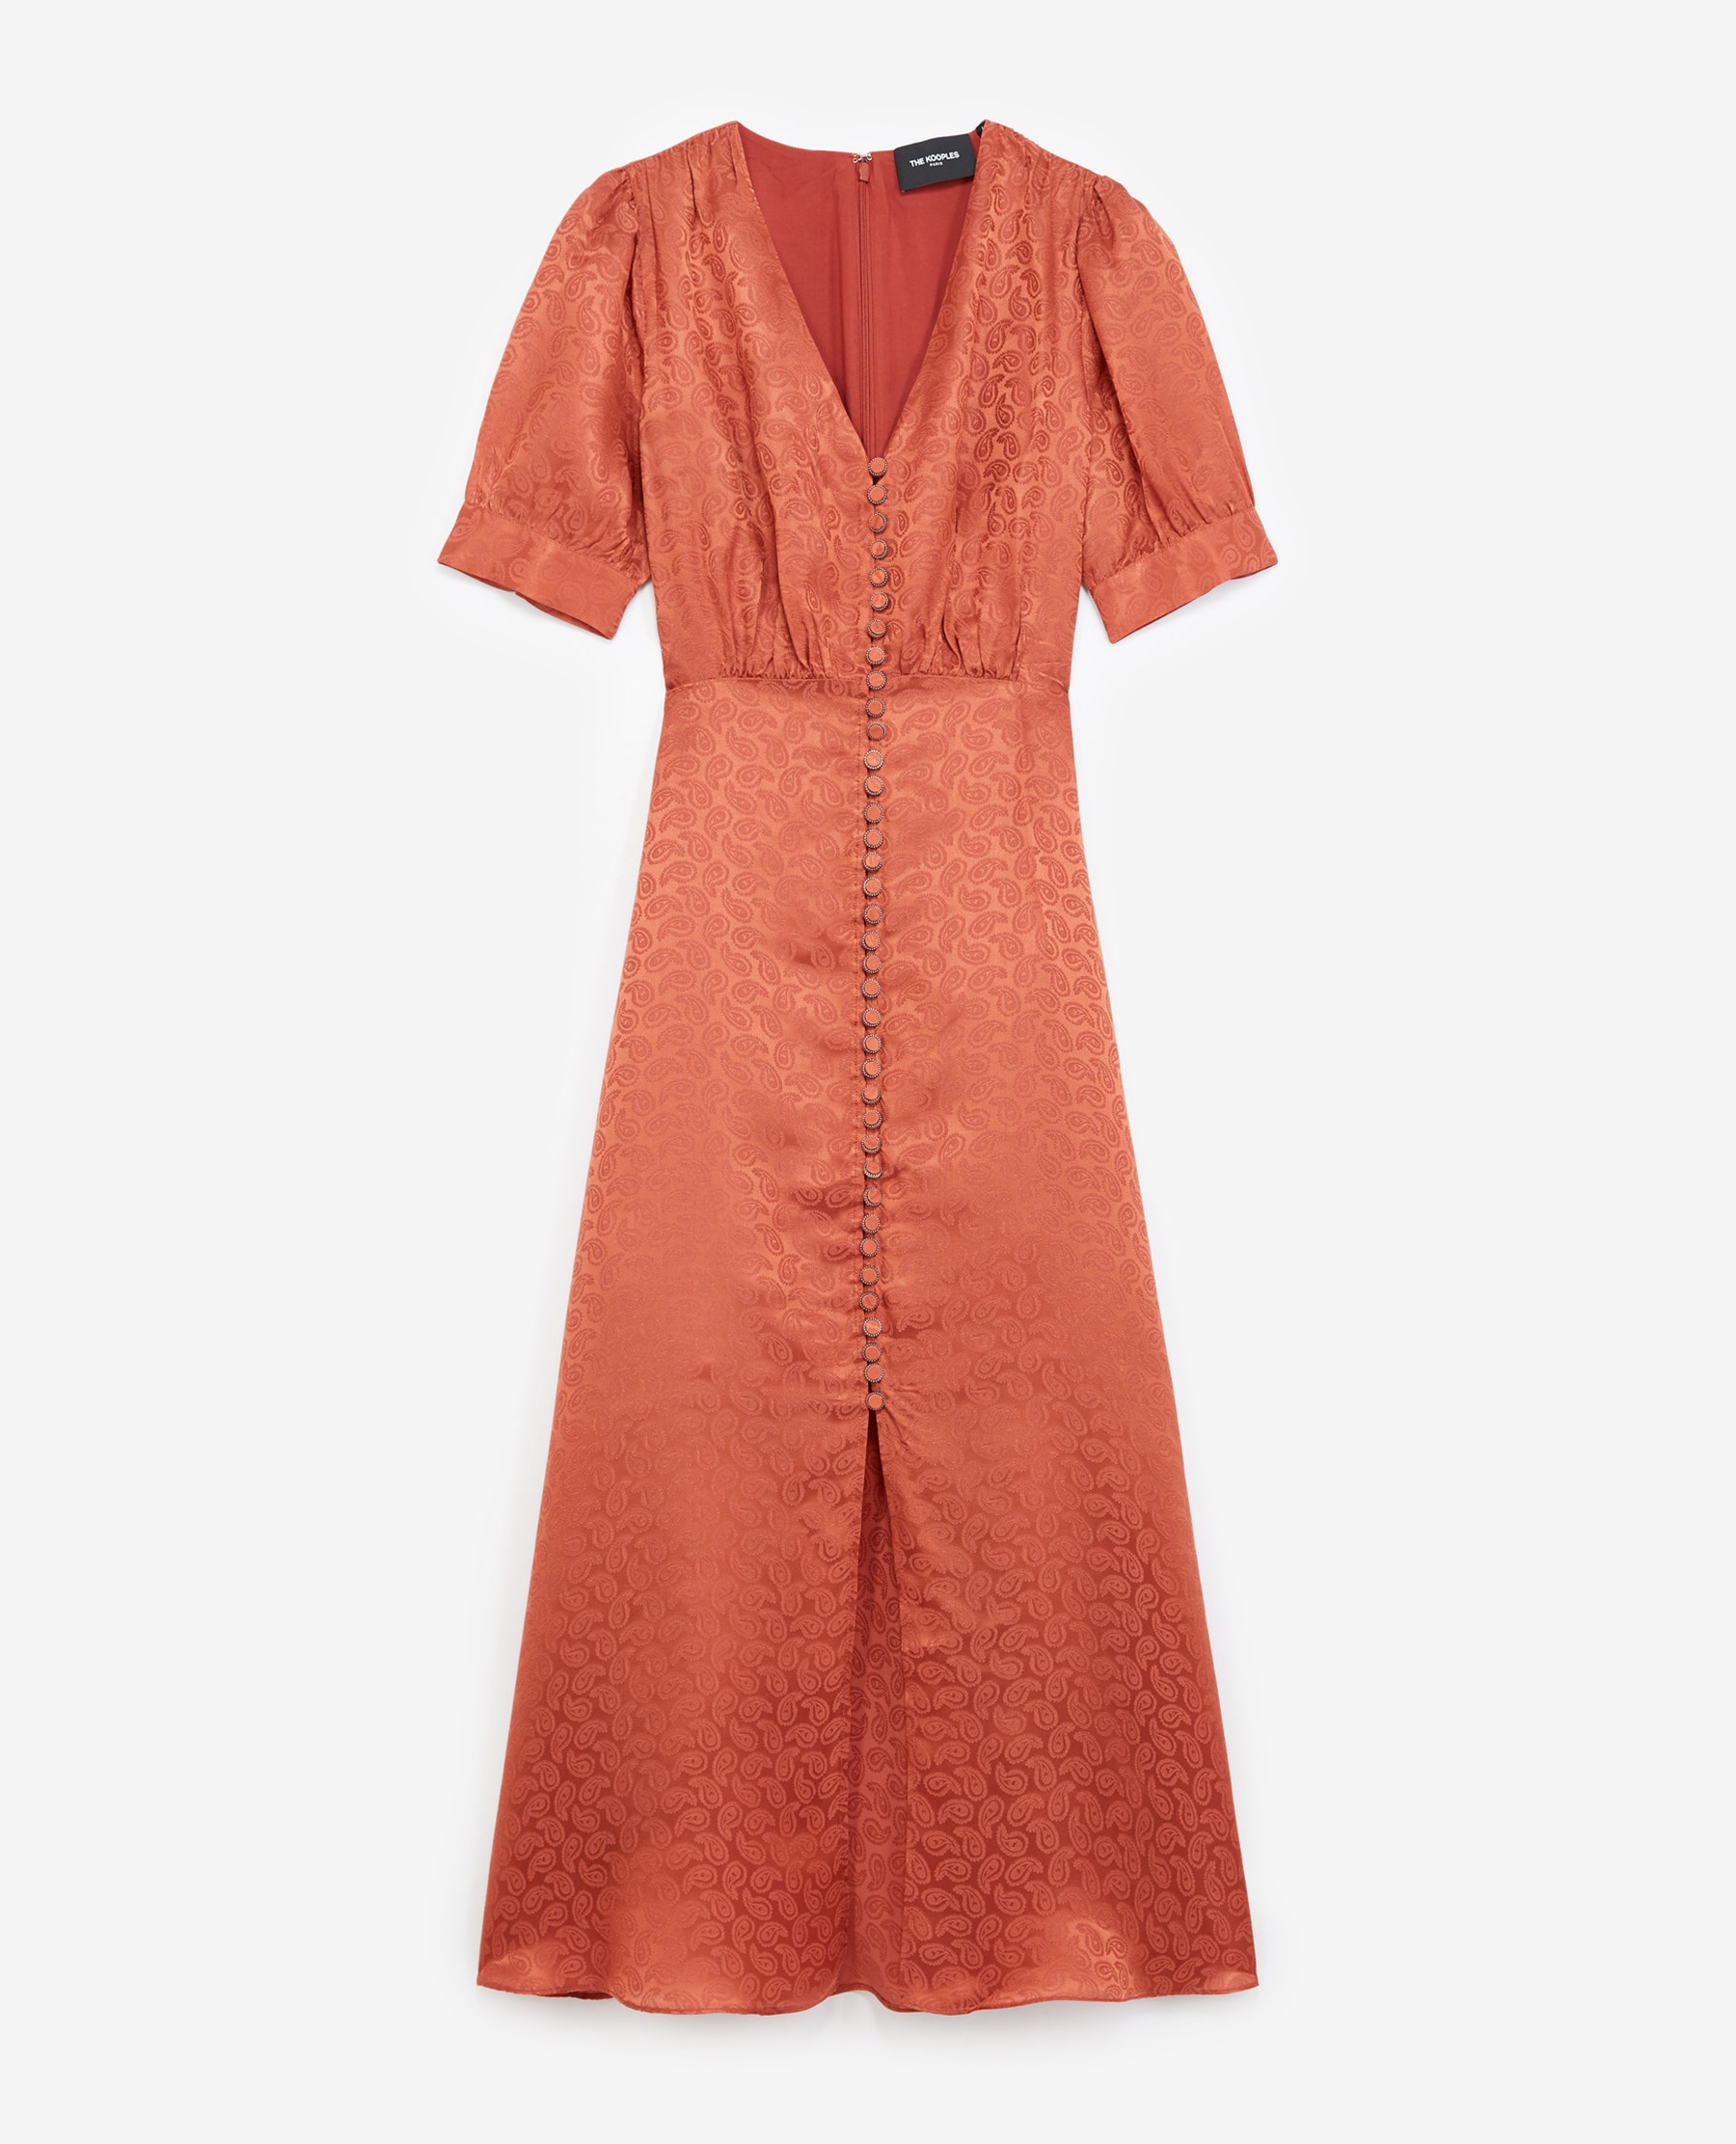 Robe longue rose jacquard boutonnée - The Kooples - Modalova